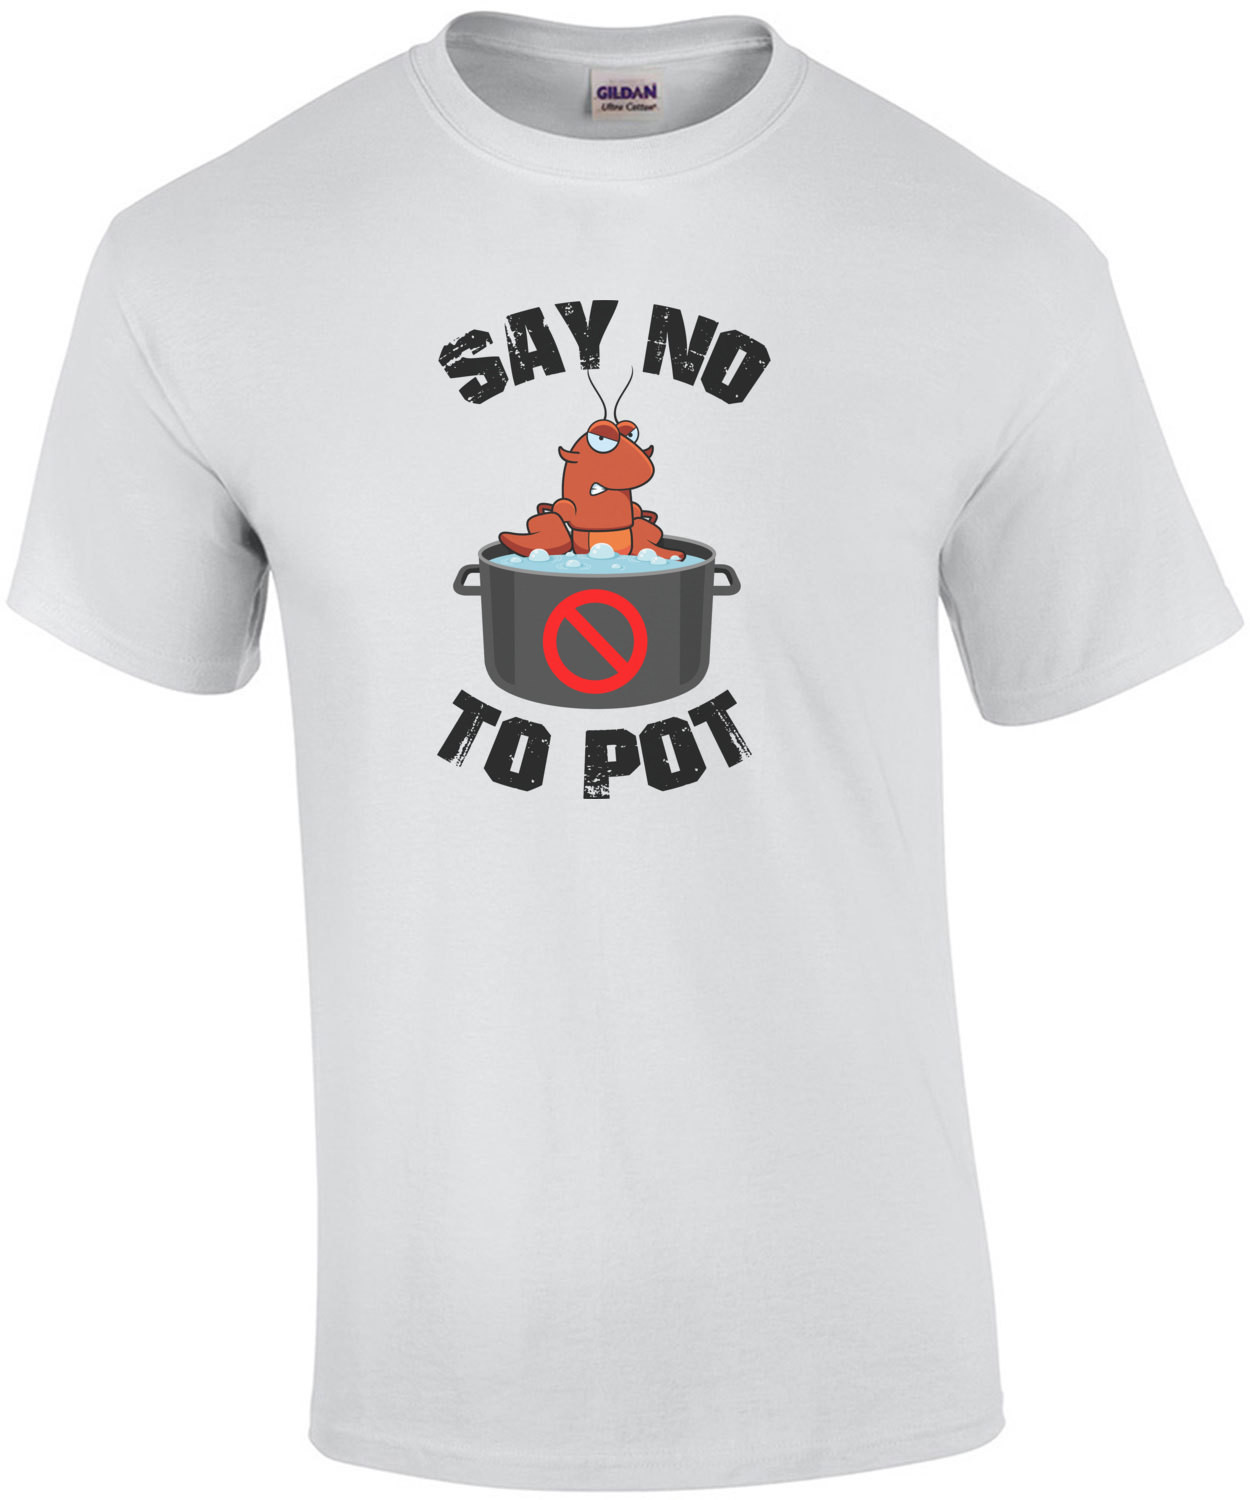 Say no to pot - lobster in pot. Funny lobster t-shirt. Maine t-shirt